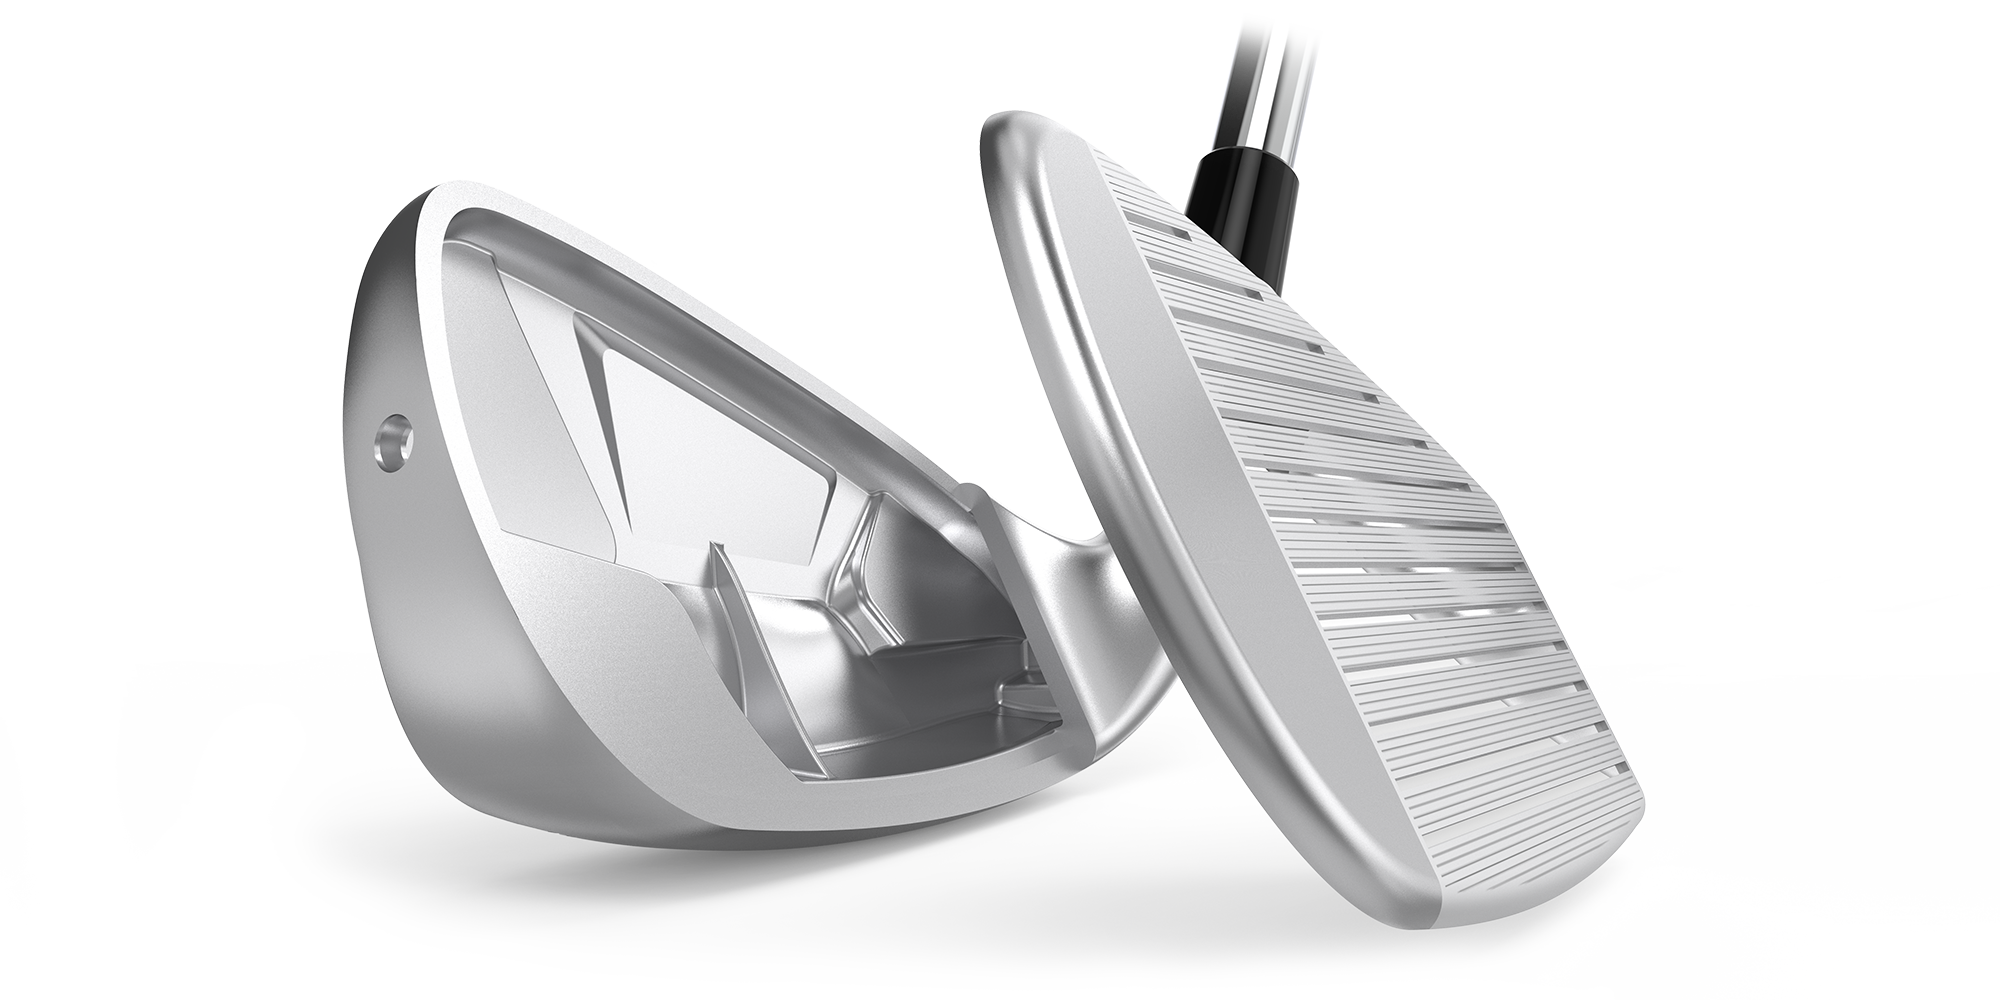 Cleveland Launcher UHX Irons Face Technology